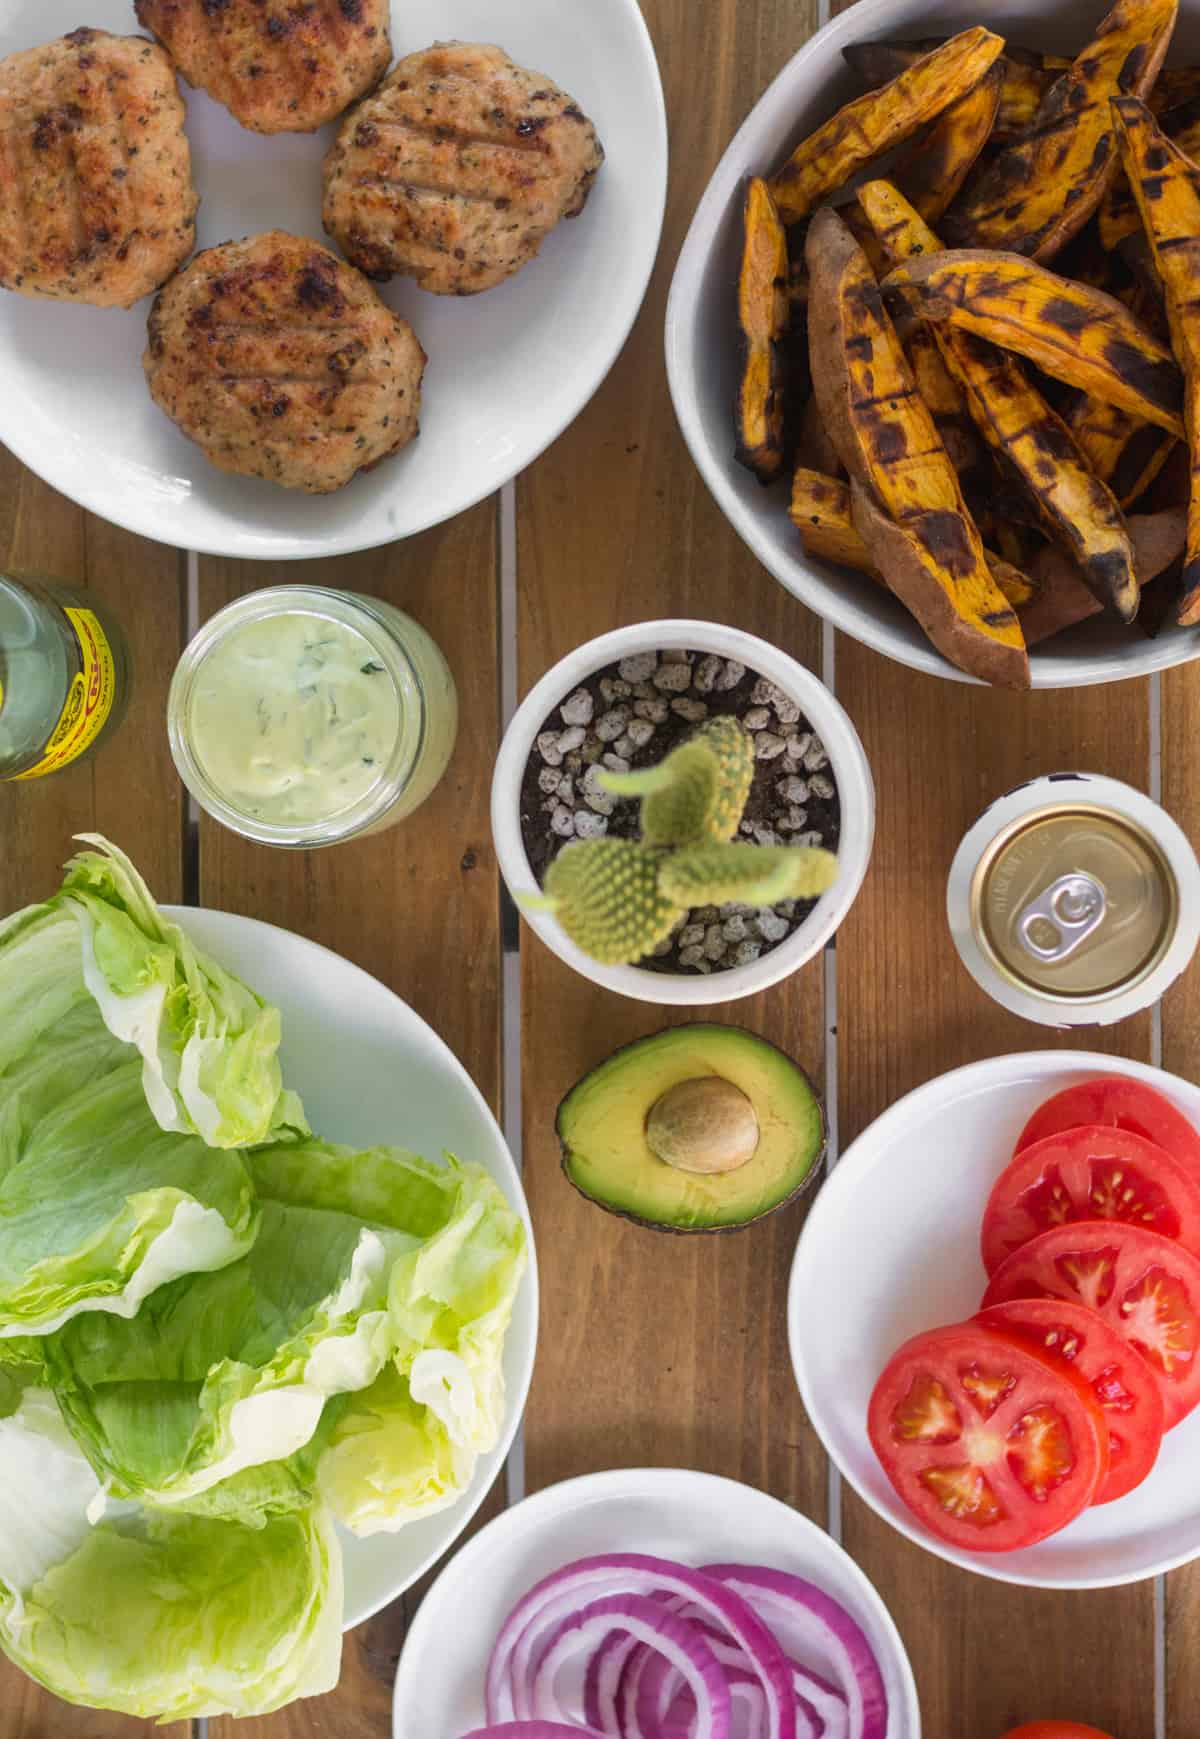 Table spread of a bunch of burger topping and side dishes - lettuce, tomato, red onion, avocado, aioli, sweet potato fries, beer, and sparkling water